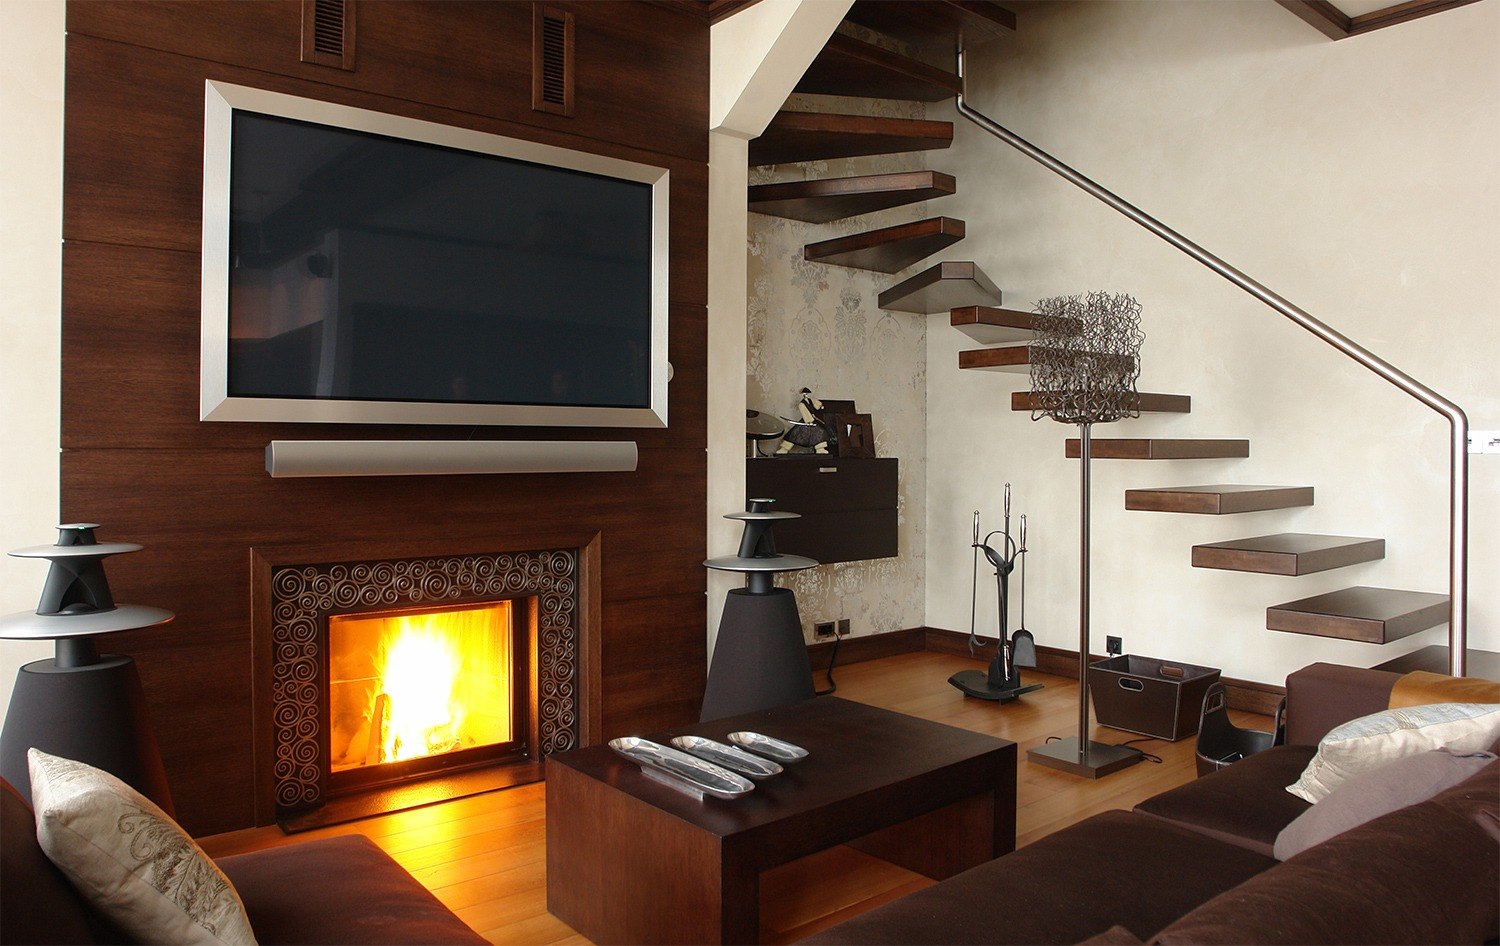 Mounting Your Tv Above The Fireplace The Debate Heats Up Zing Blog By Quicken Loans Zing